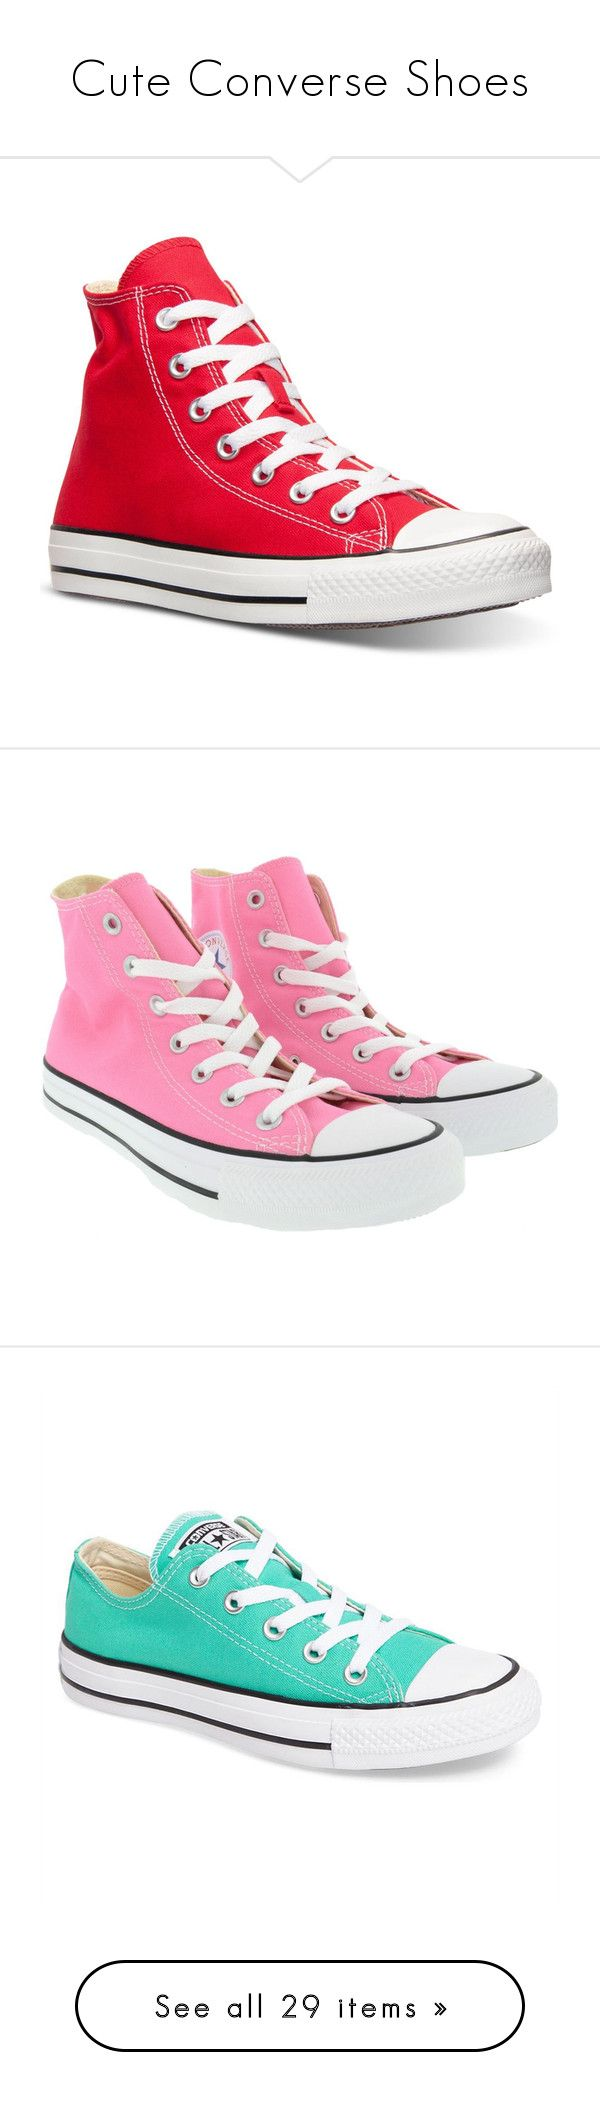 """Cute Converse Shoes"" by english-thea ❤ liked on Polyvore featuring shoes, sneakers, converse, tennis shoes, 18. converse., red, red trainers, high top tennis shoes, converse high tops and red high tops"